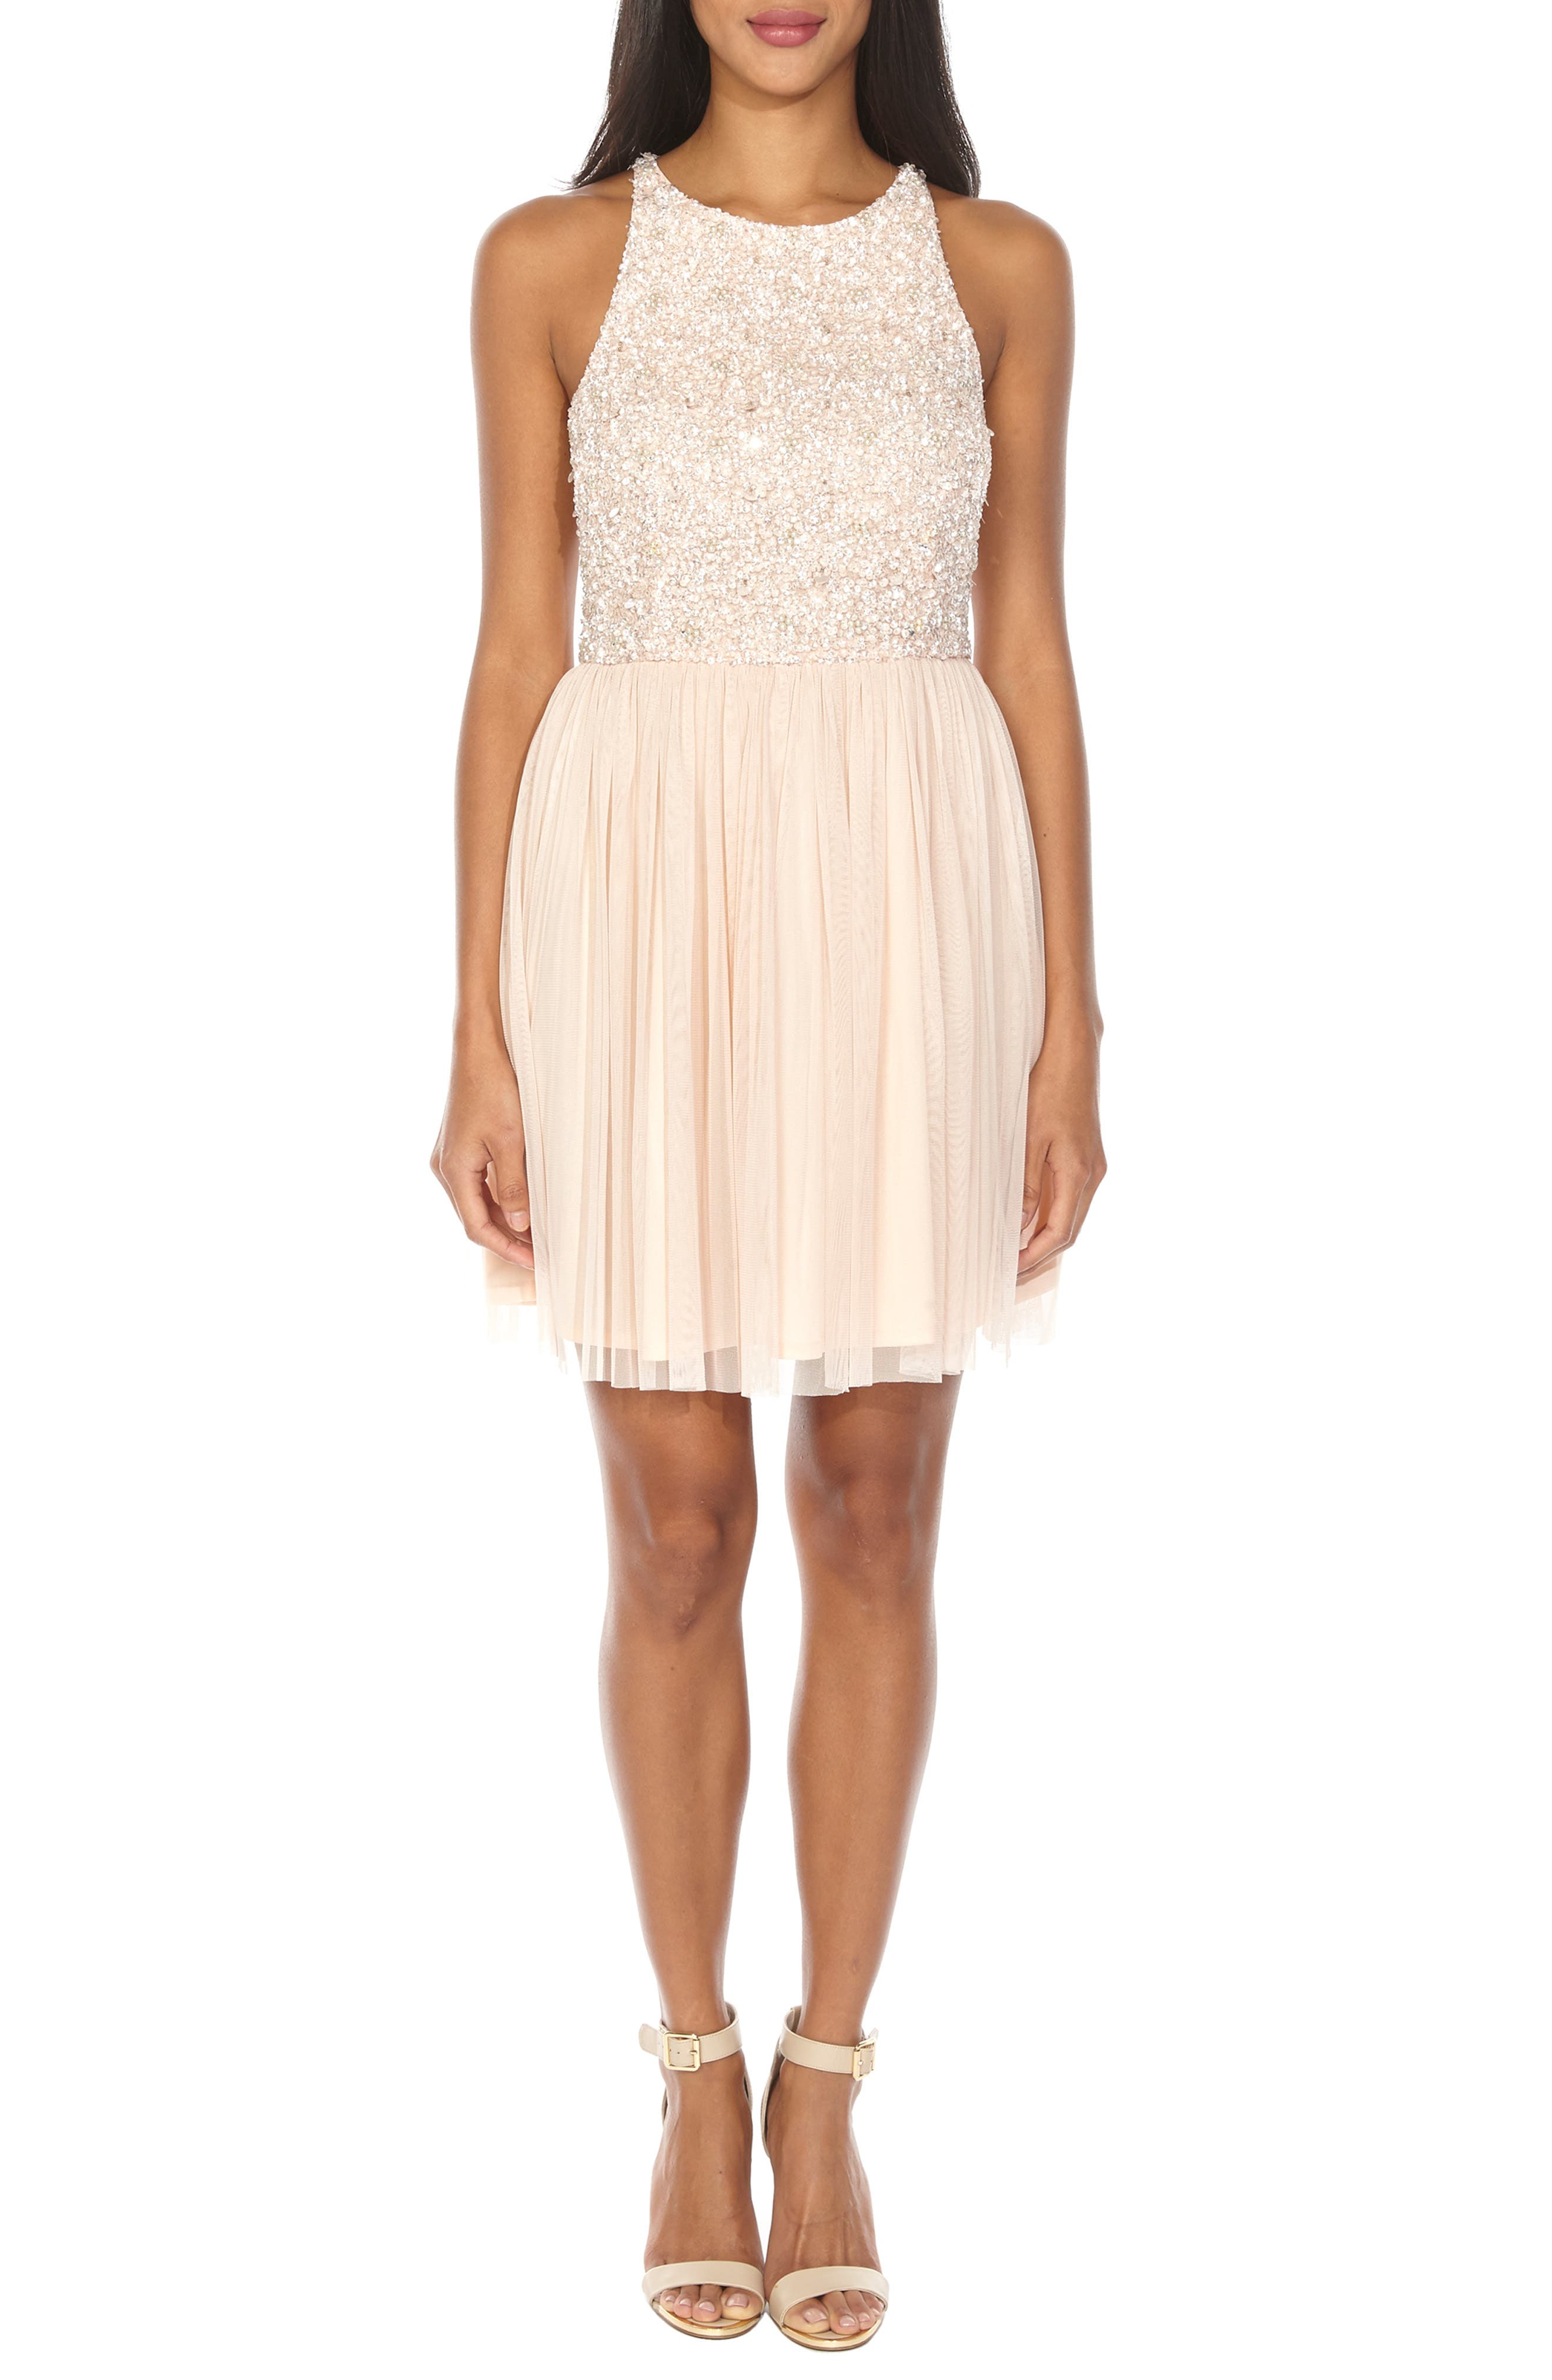 Picasso Sequin Cocktail Dress,                             Main thumbnail 1, color,                             NUDE